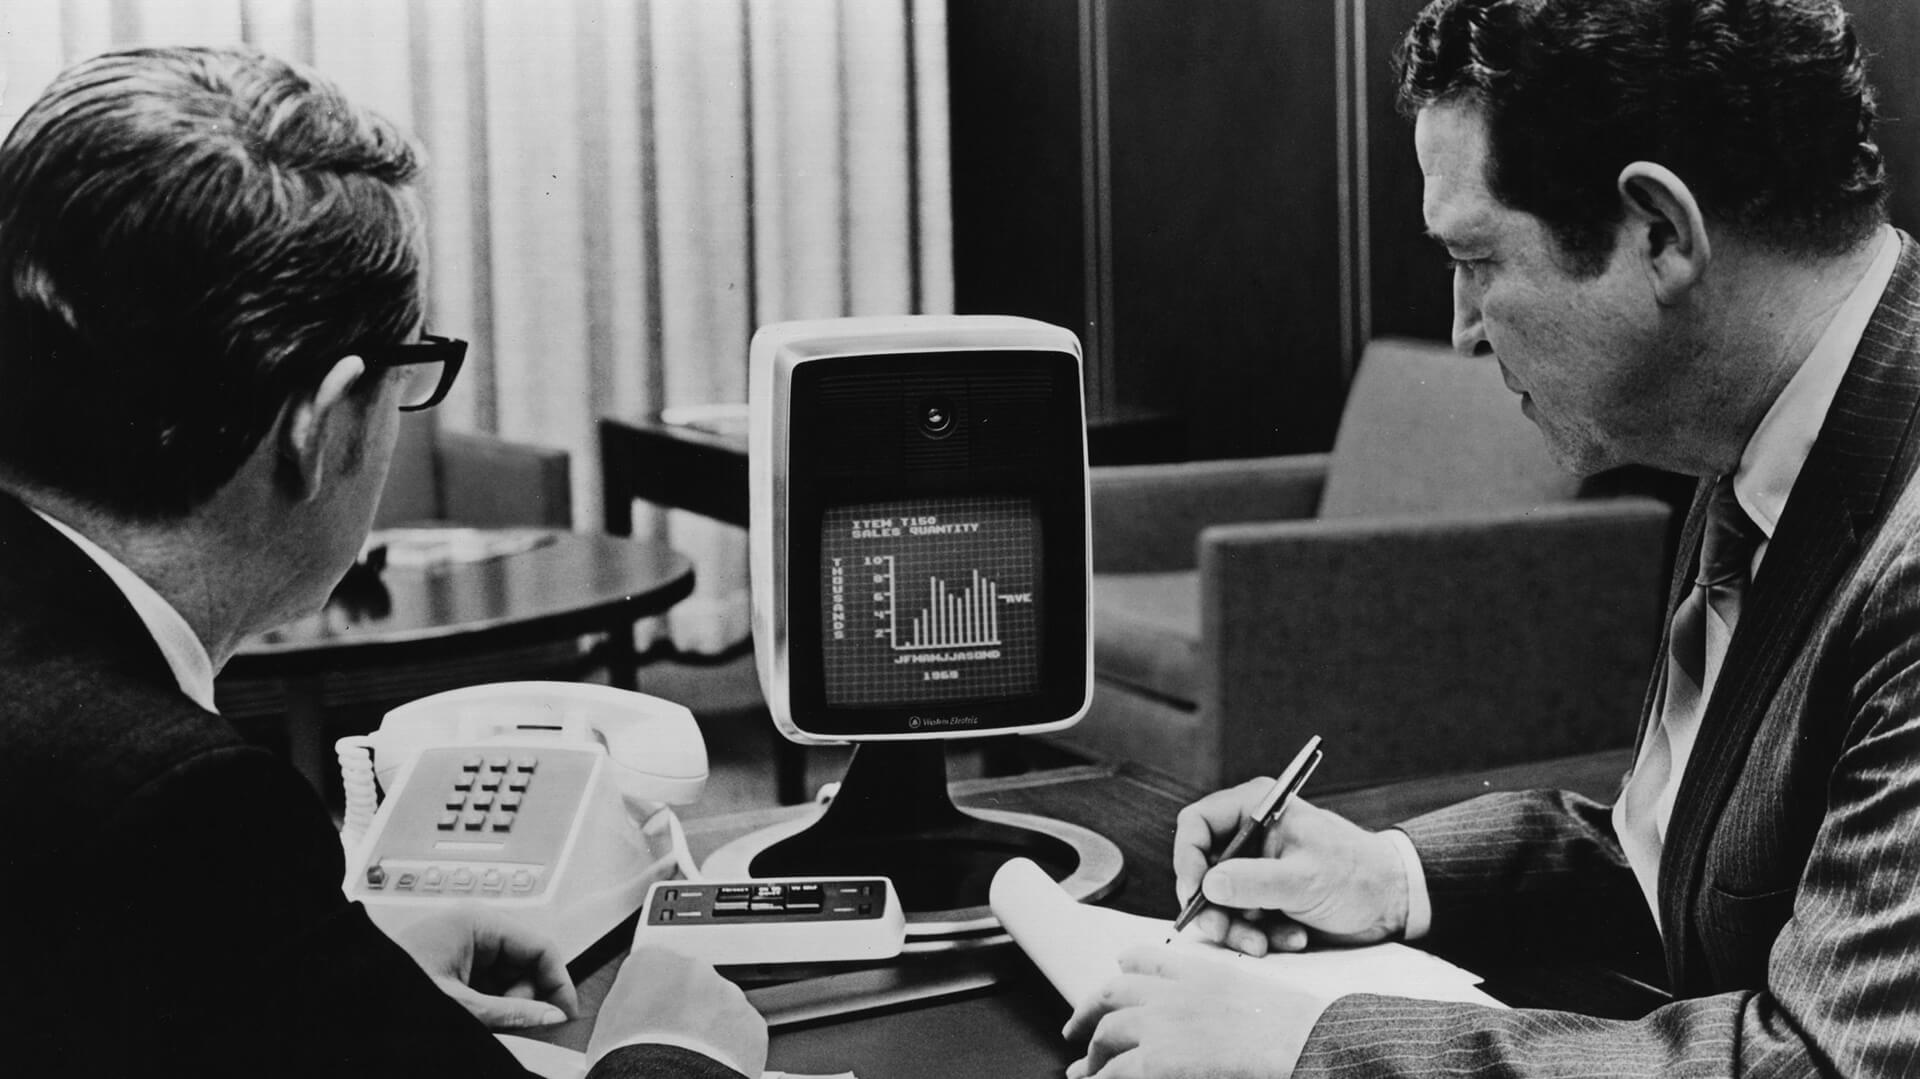 A Brief History of Video Conferencing: From the Beginning to Full Commercial Use 6